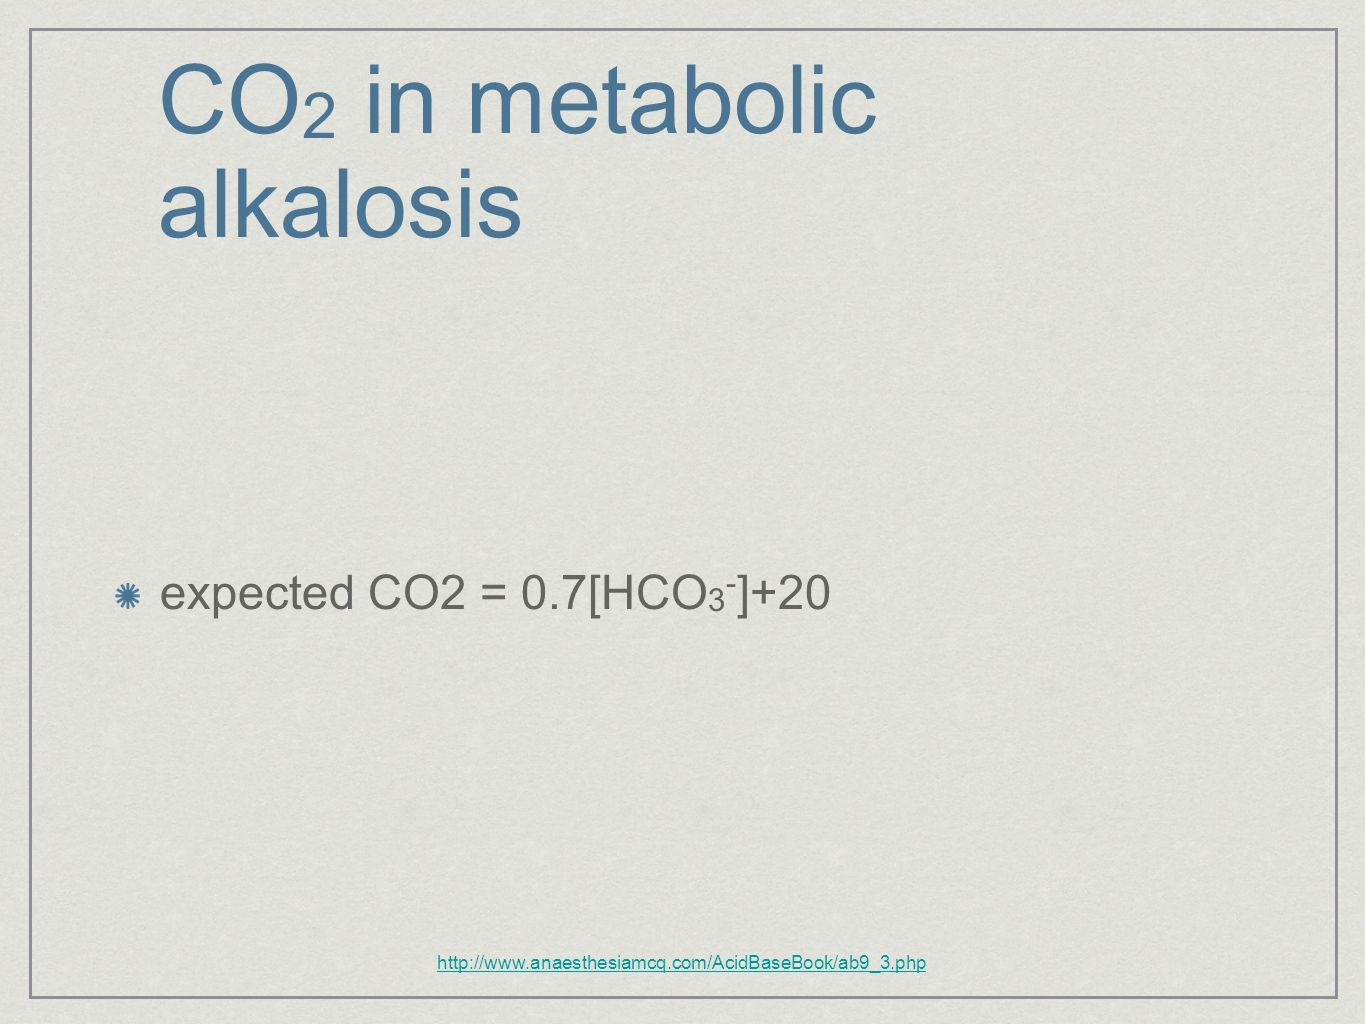 CO2 in metabolic alkalosis